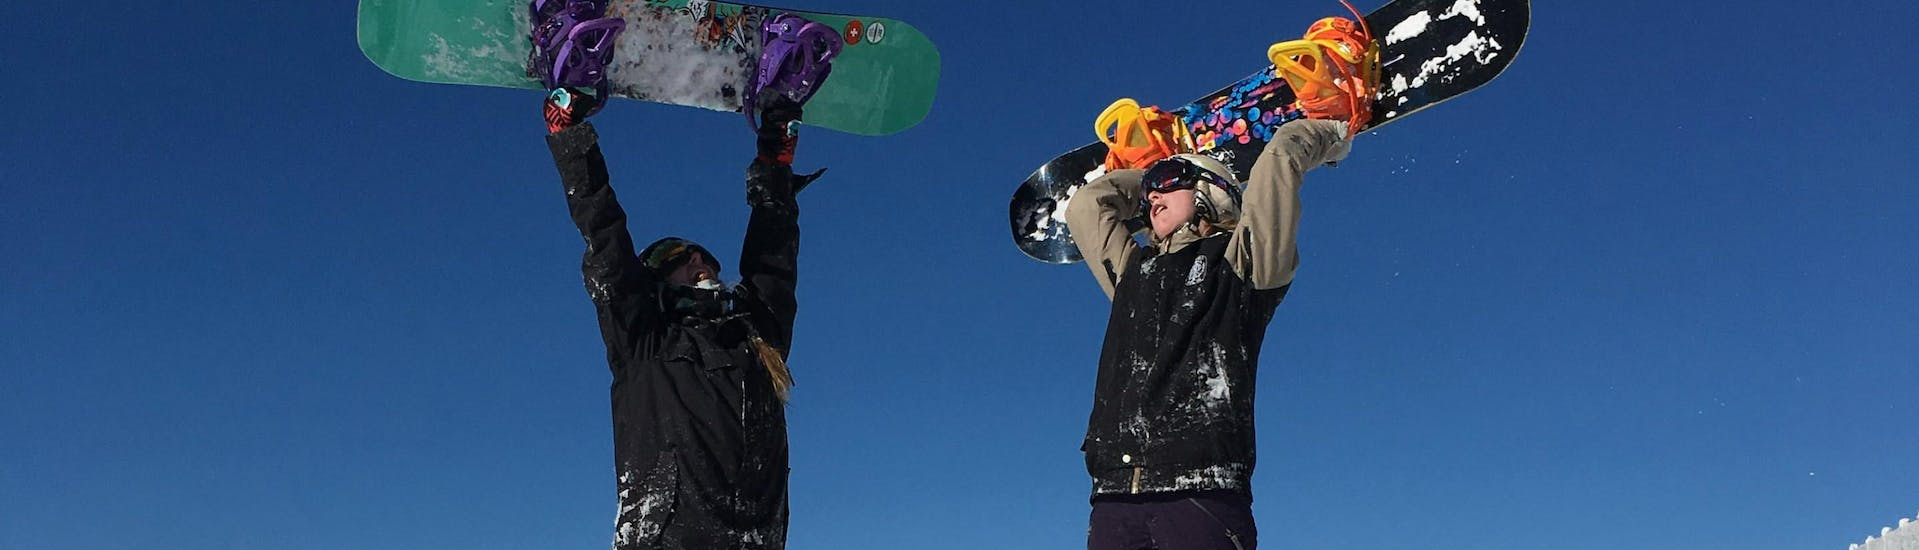 Snowboard Instructor Private - Coaching / Guiding / Freeride